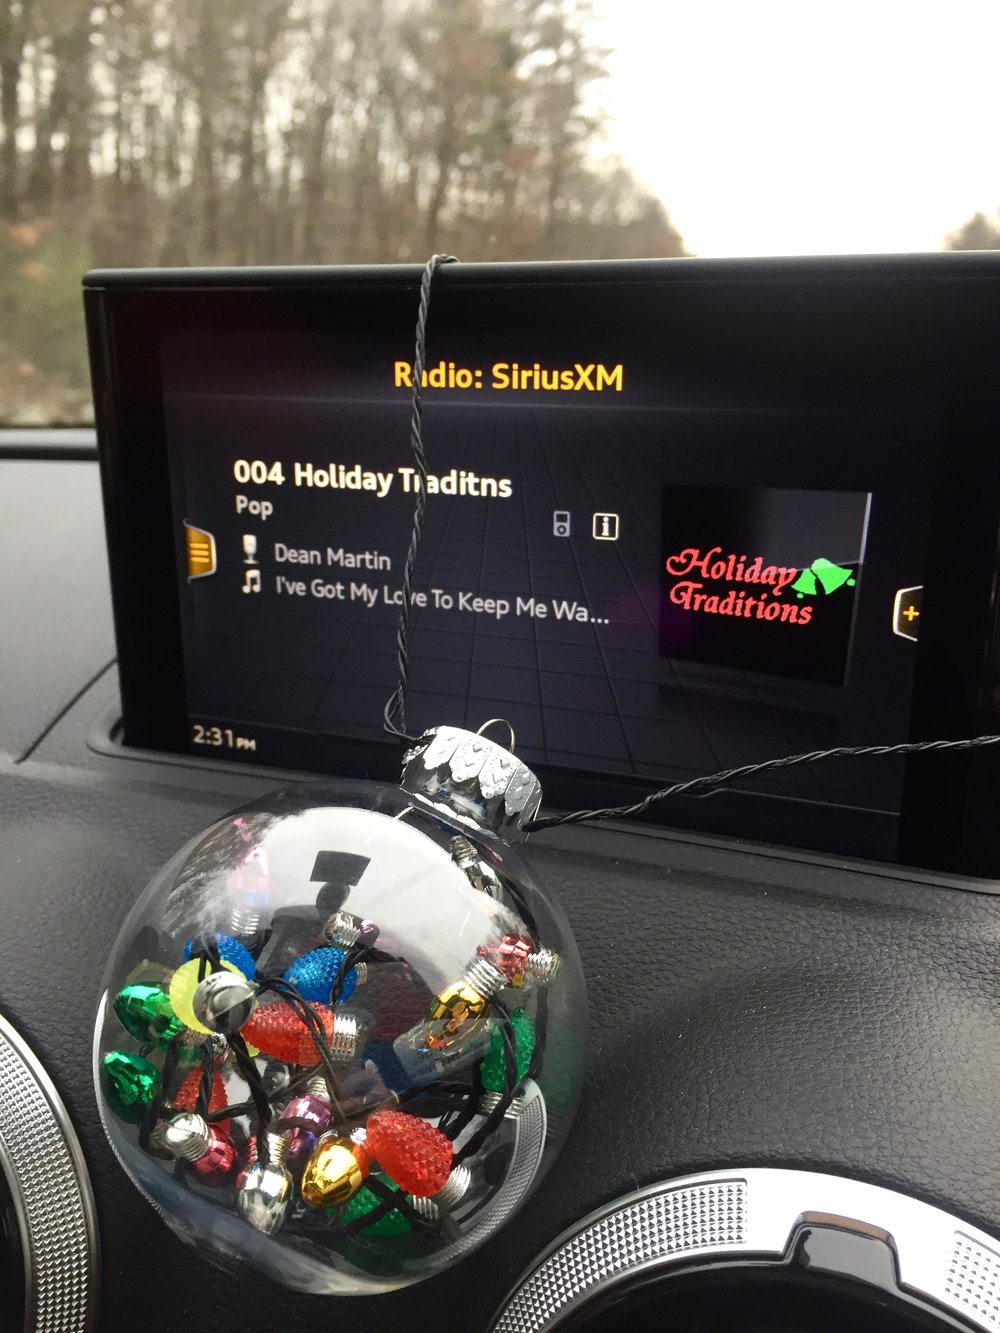 Christmas ornament on the dashboard